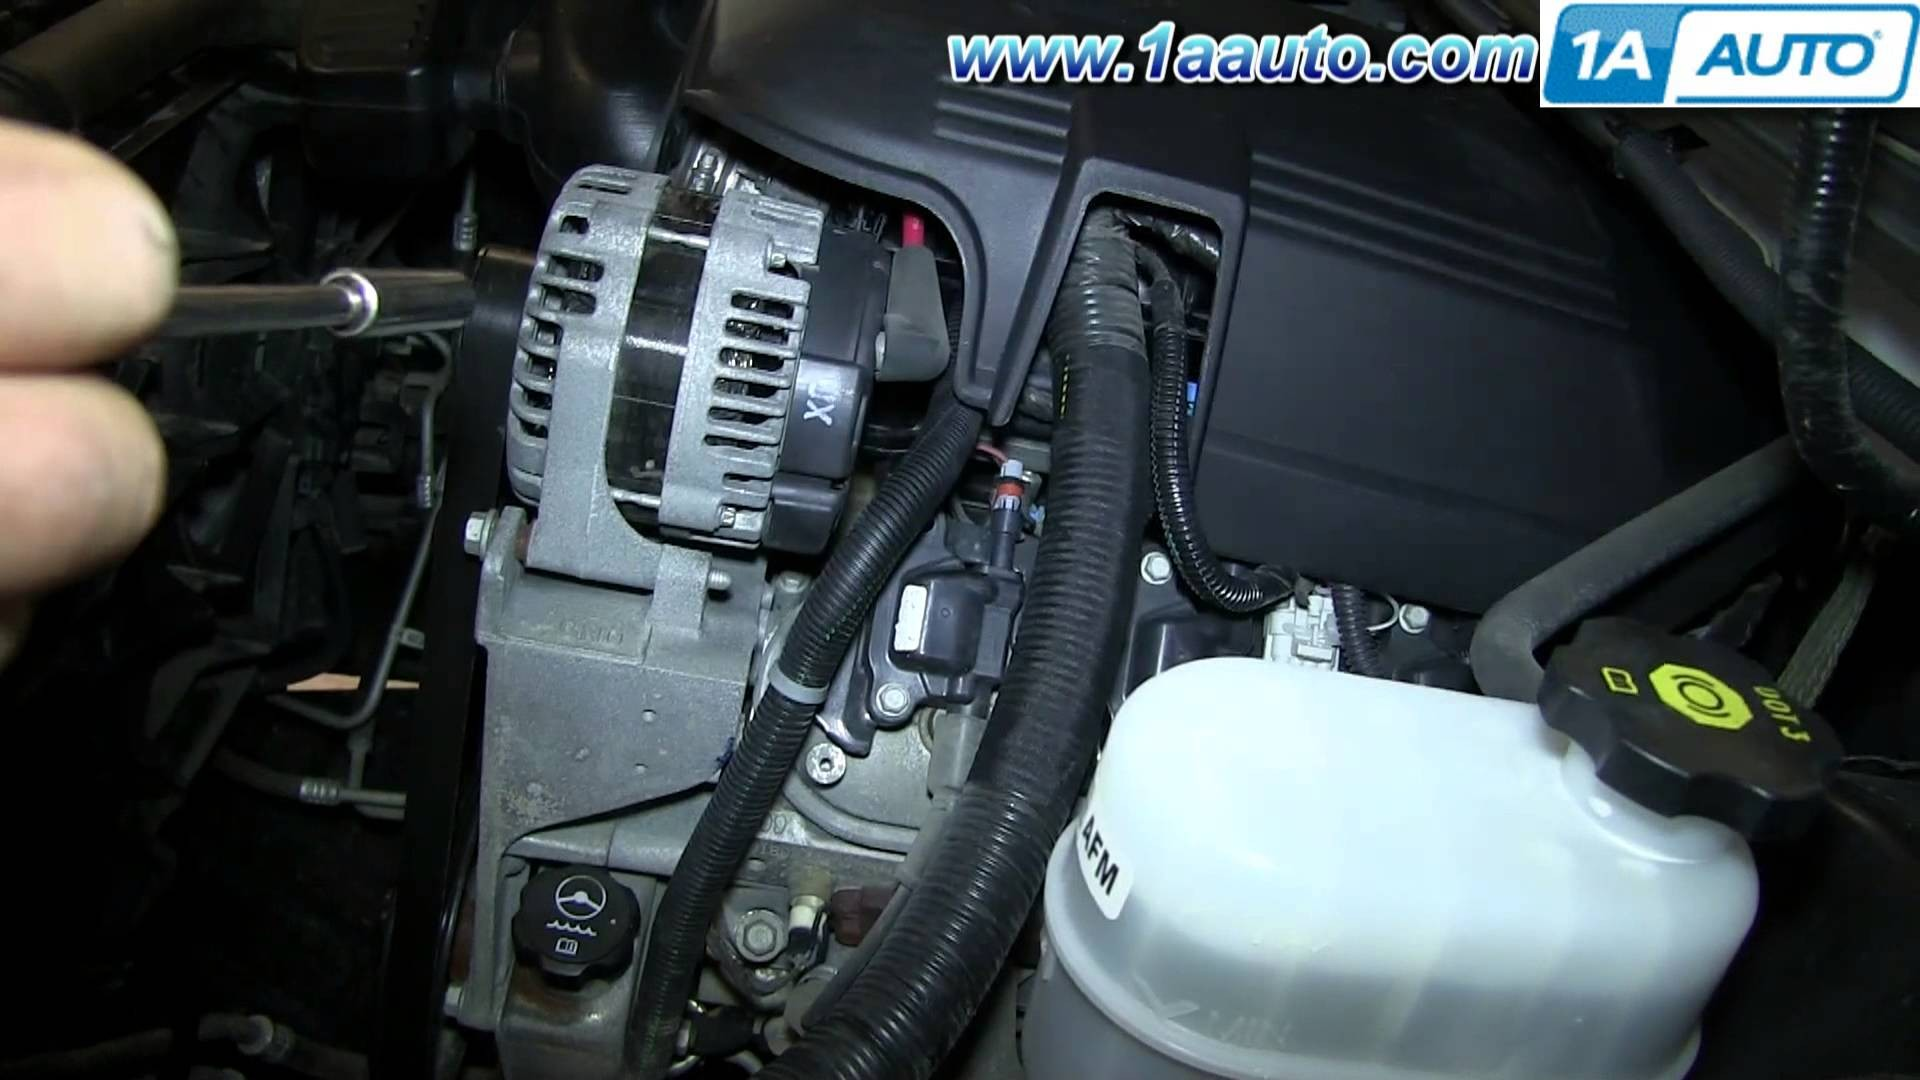 2009 Chevy Aveo Engine Diagram 2006 Hhr Wiring How To Install Replace Ignition Coil 2007 13 Silverado